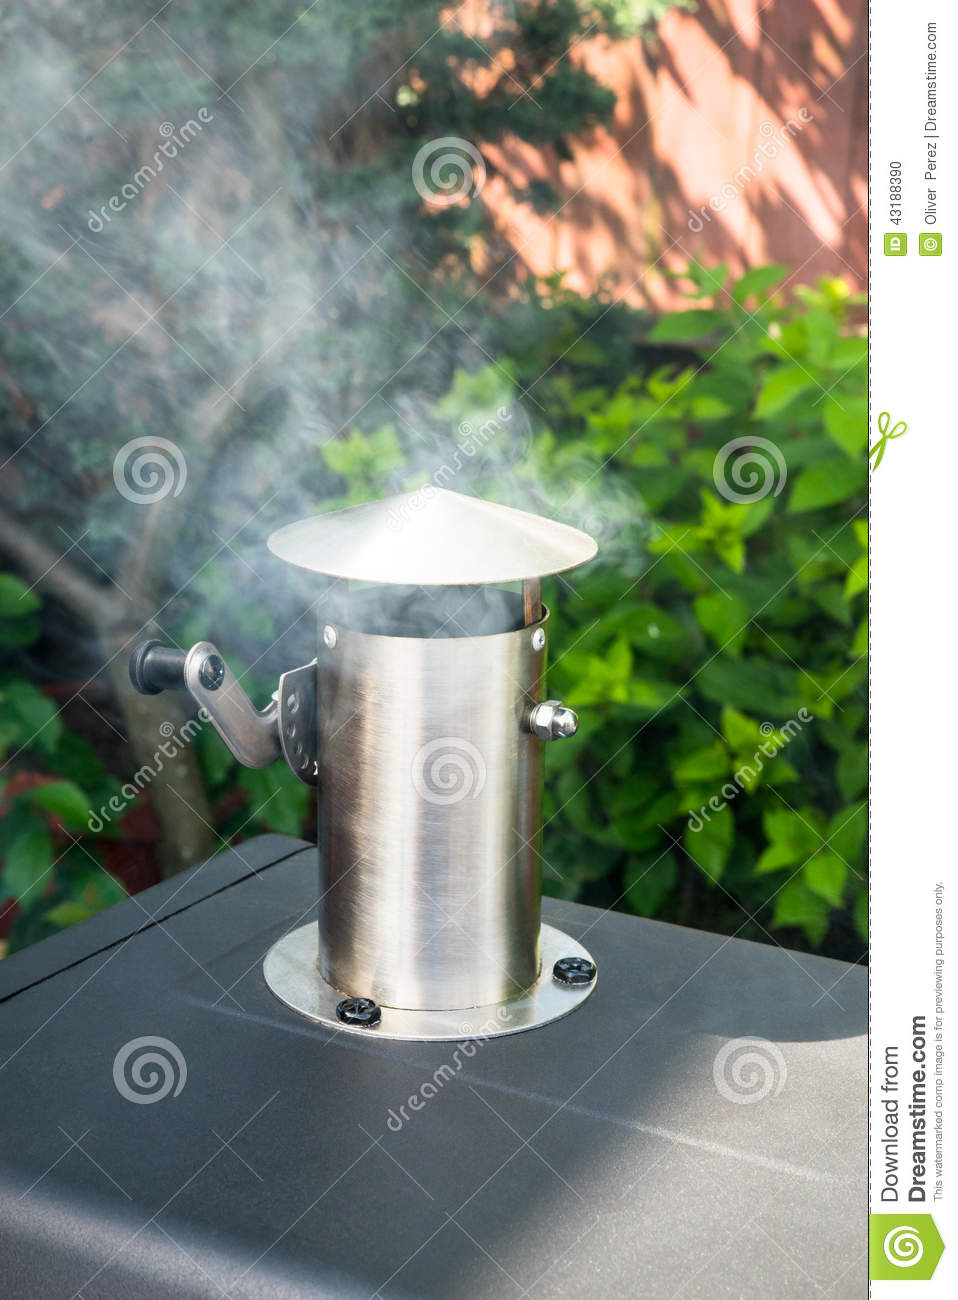 Barbecue Smoker Stock Photo Image Of Q Grilled Dinner